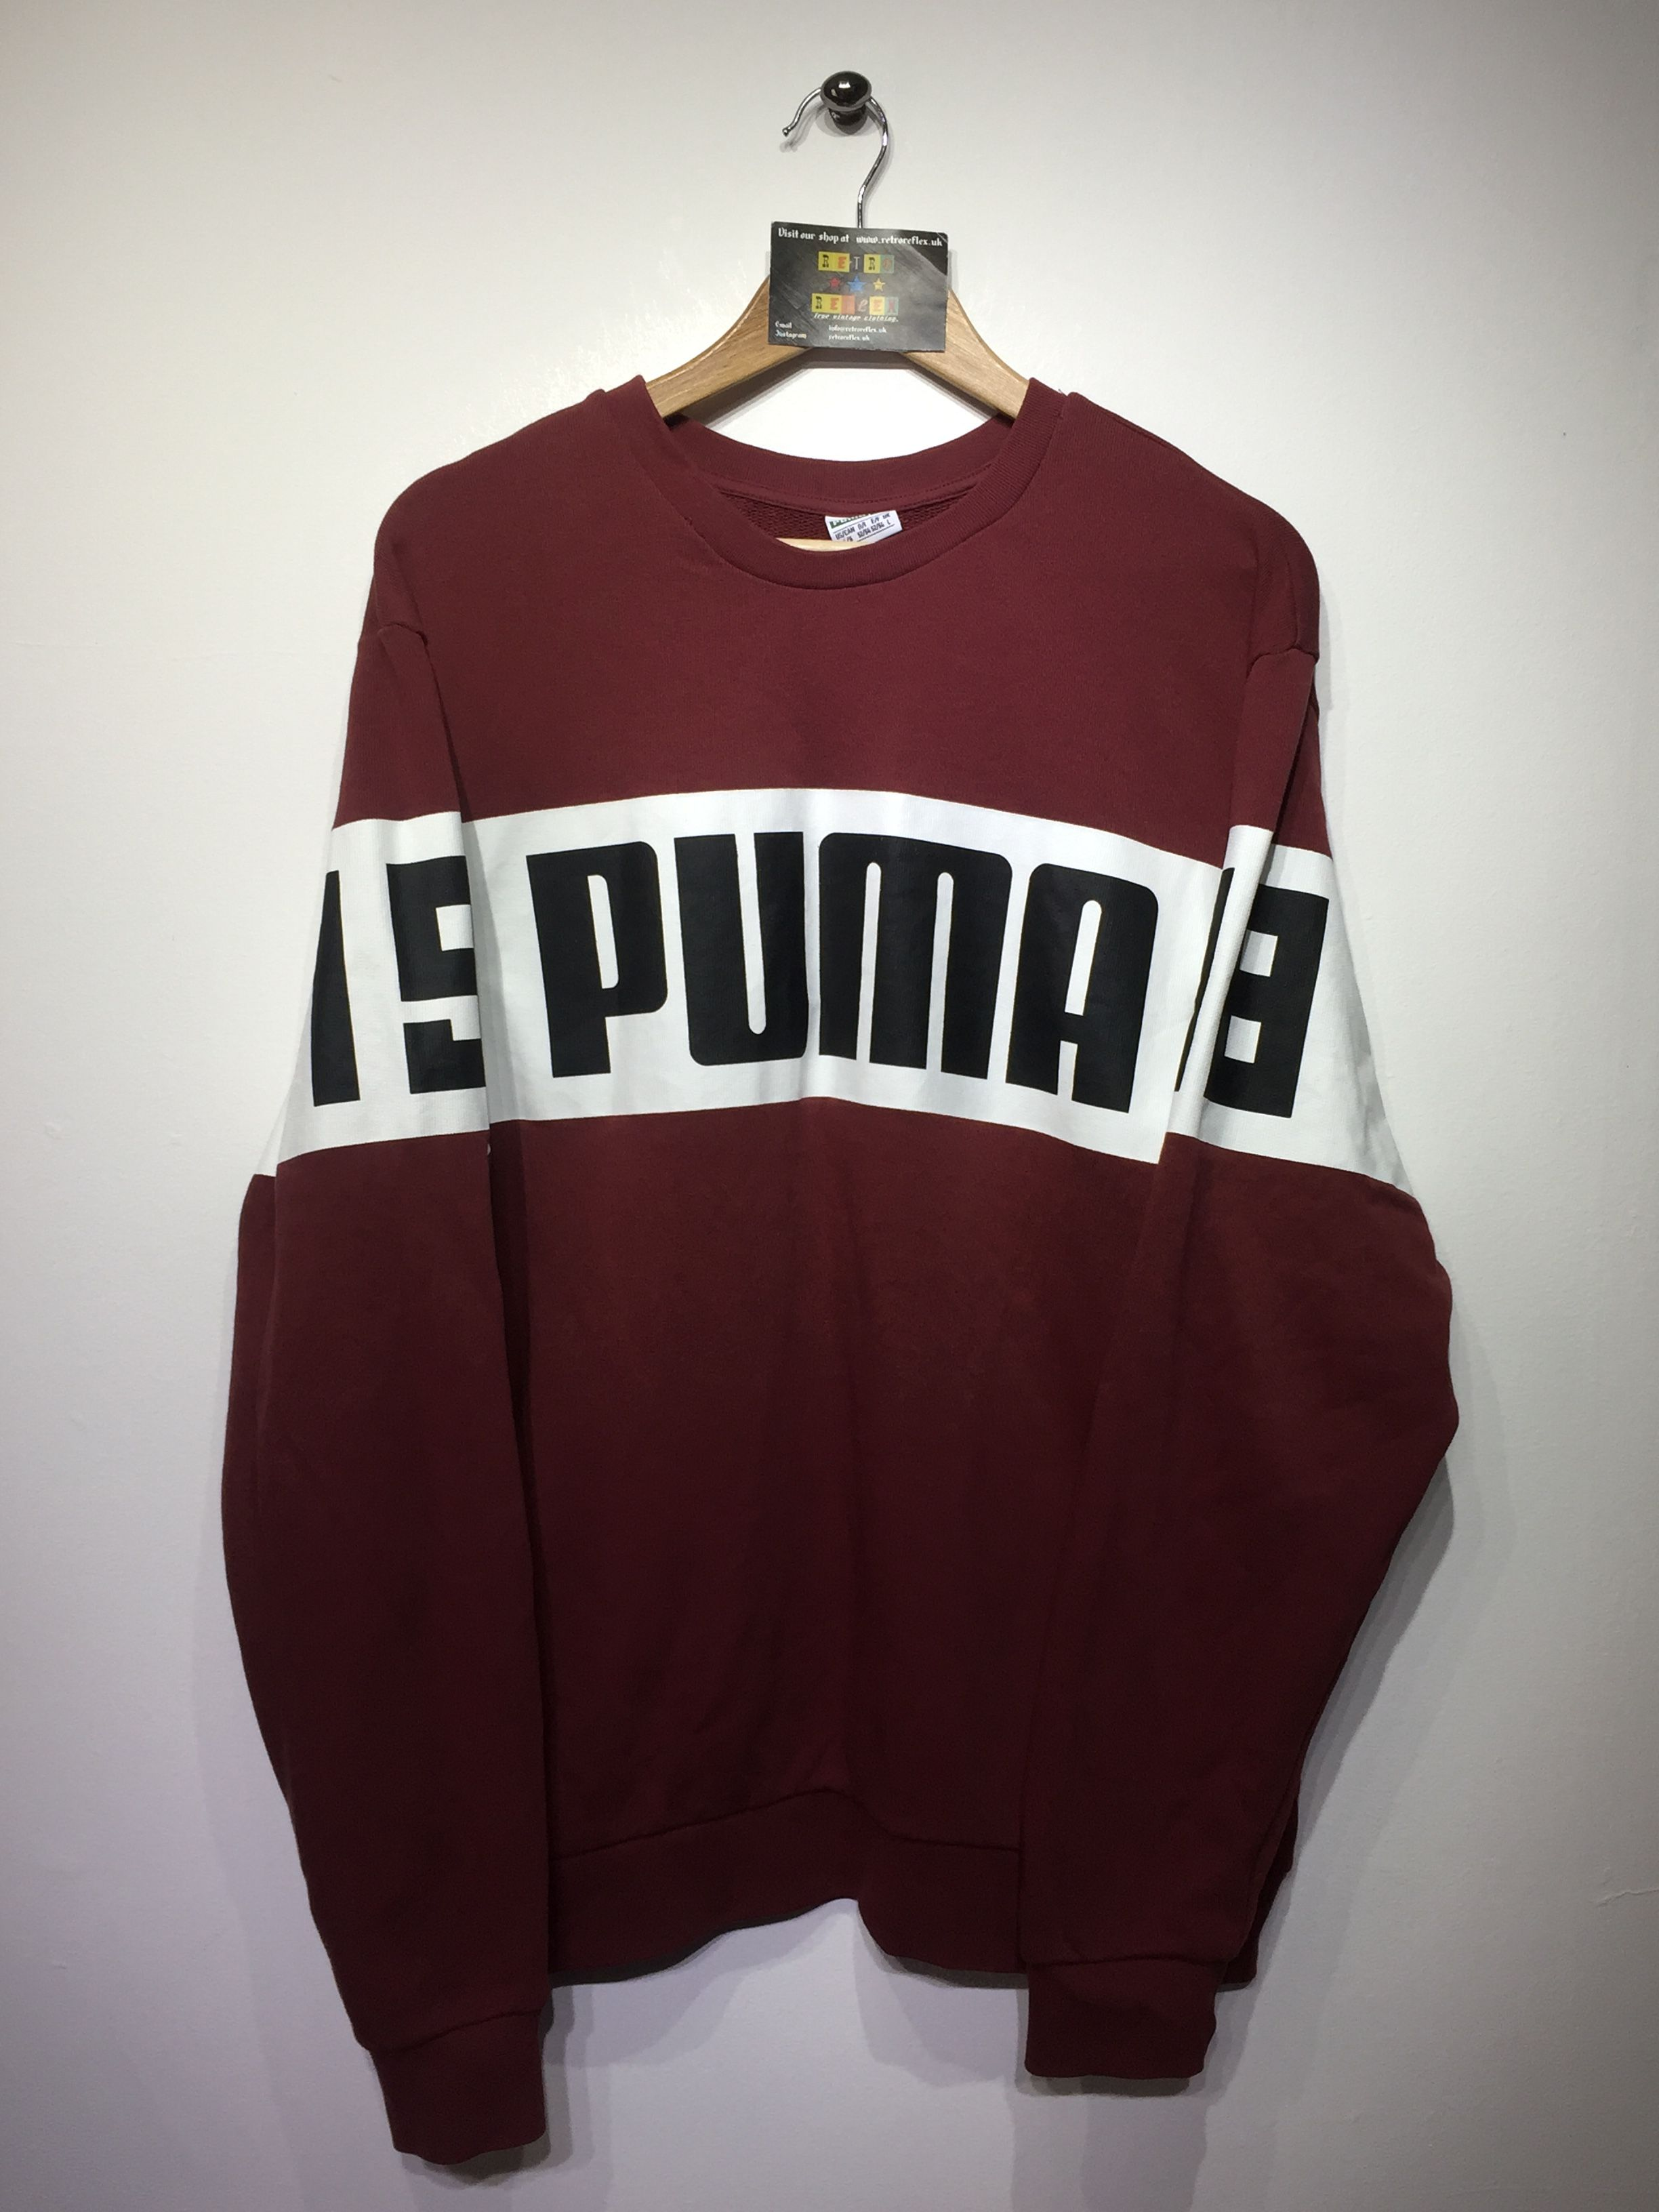 39e8436e069558 ... retro clothing. Puma Sweatshirt size Large (but Fits Oversized) £22  Website➡ www.